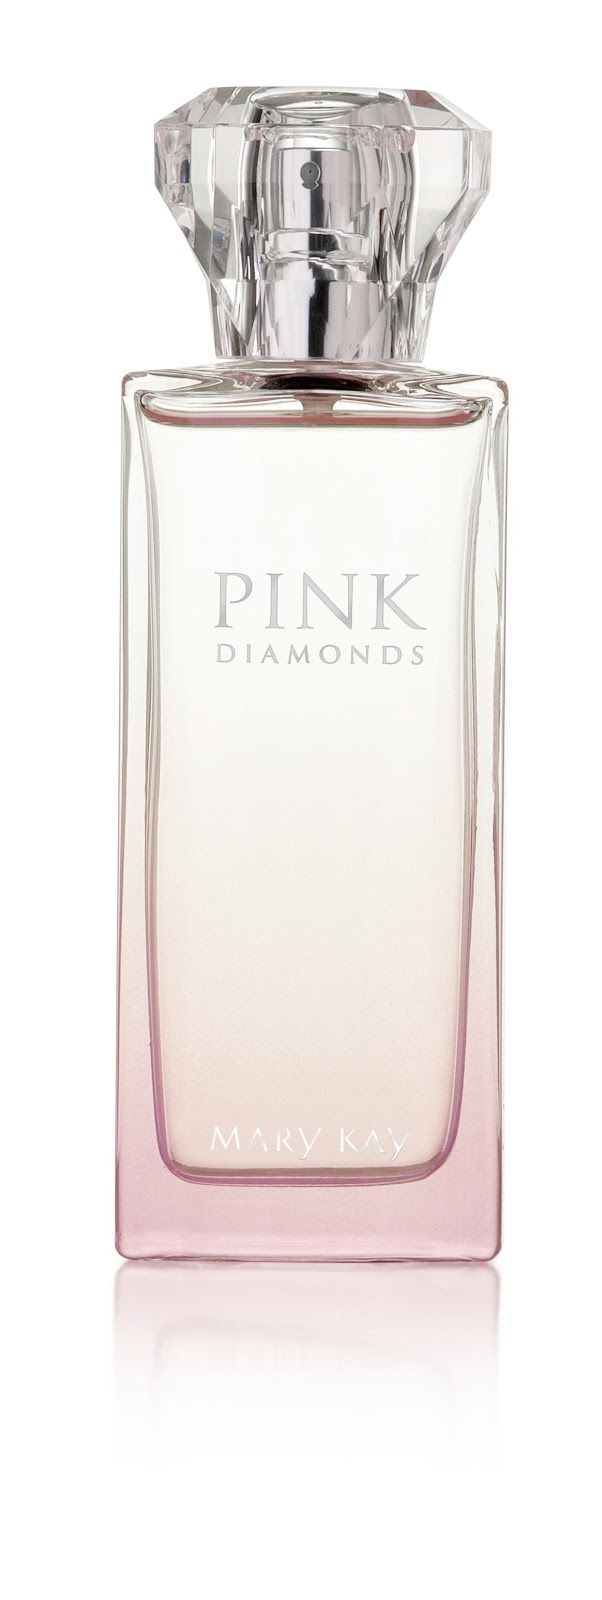 Pink Diamonds By Mary Kay Perfume delicioso!! Consultora Mary Kay Whats 051 82879161